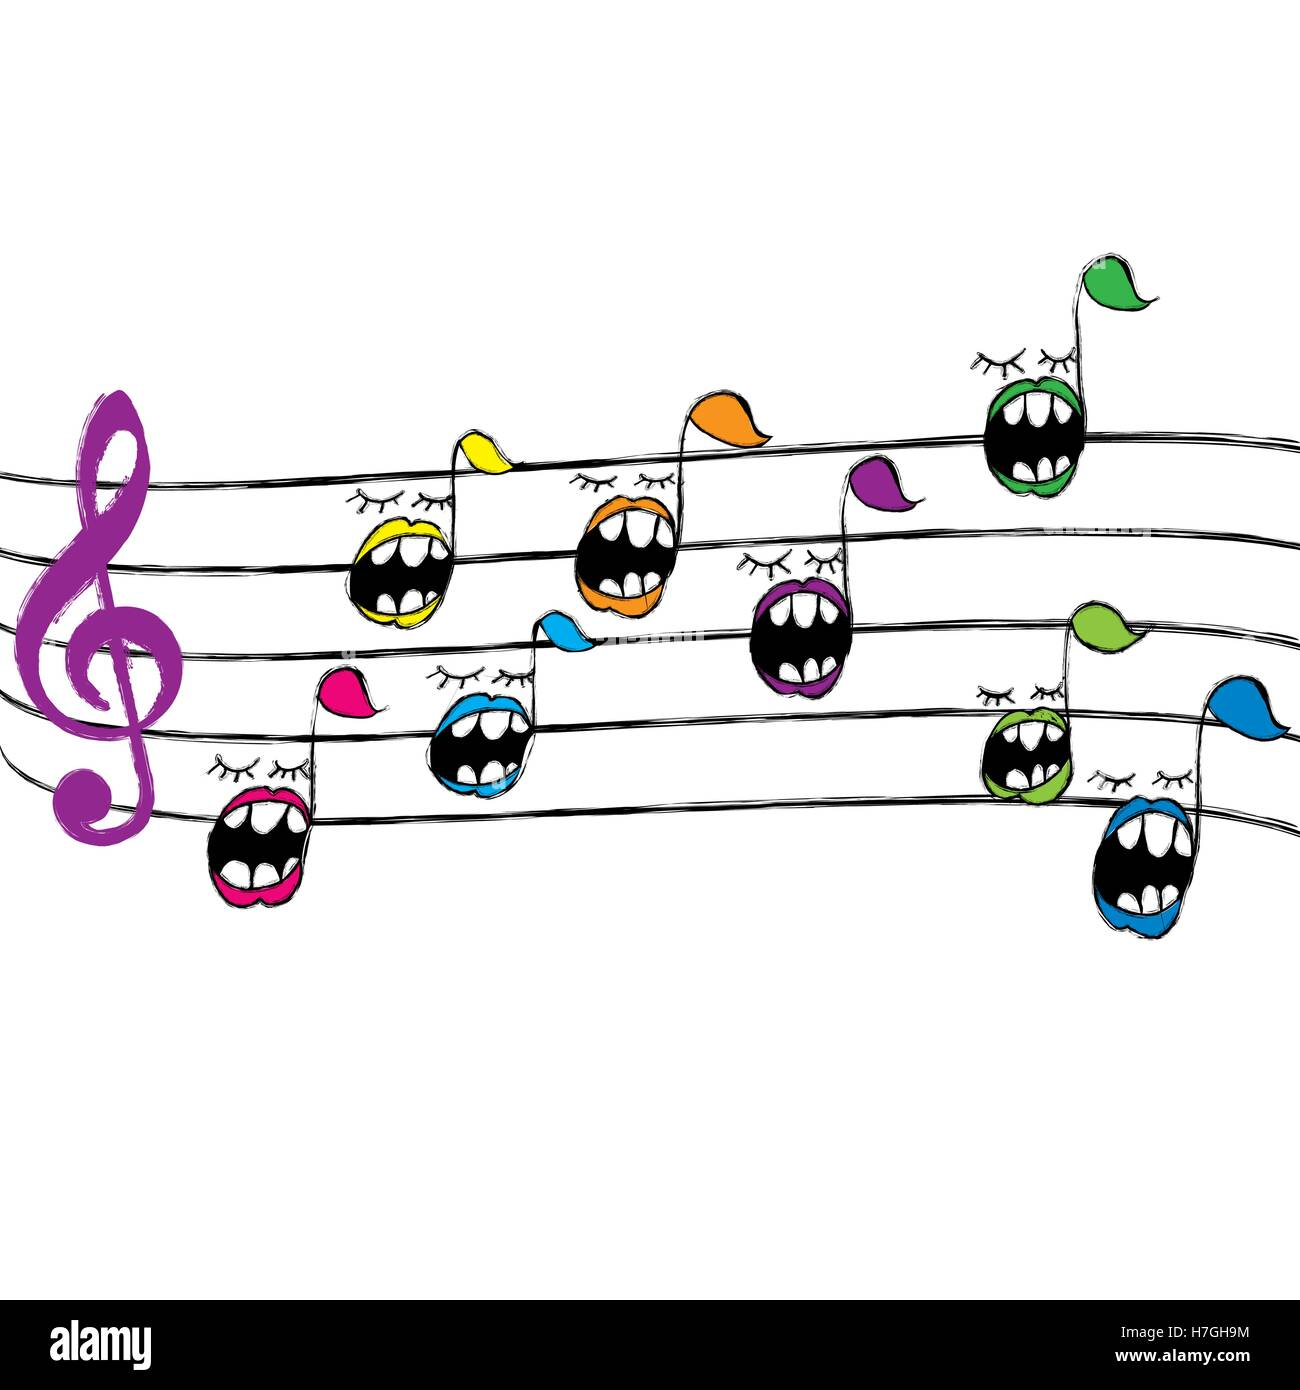 Music notes cartoon background full vector elements Stock ...